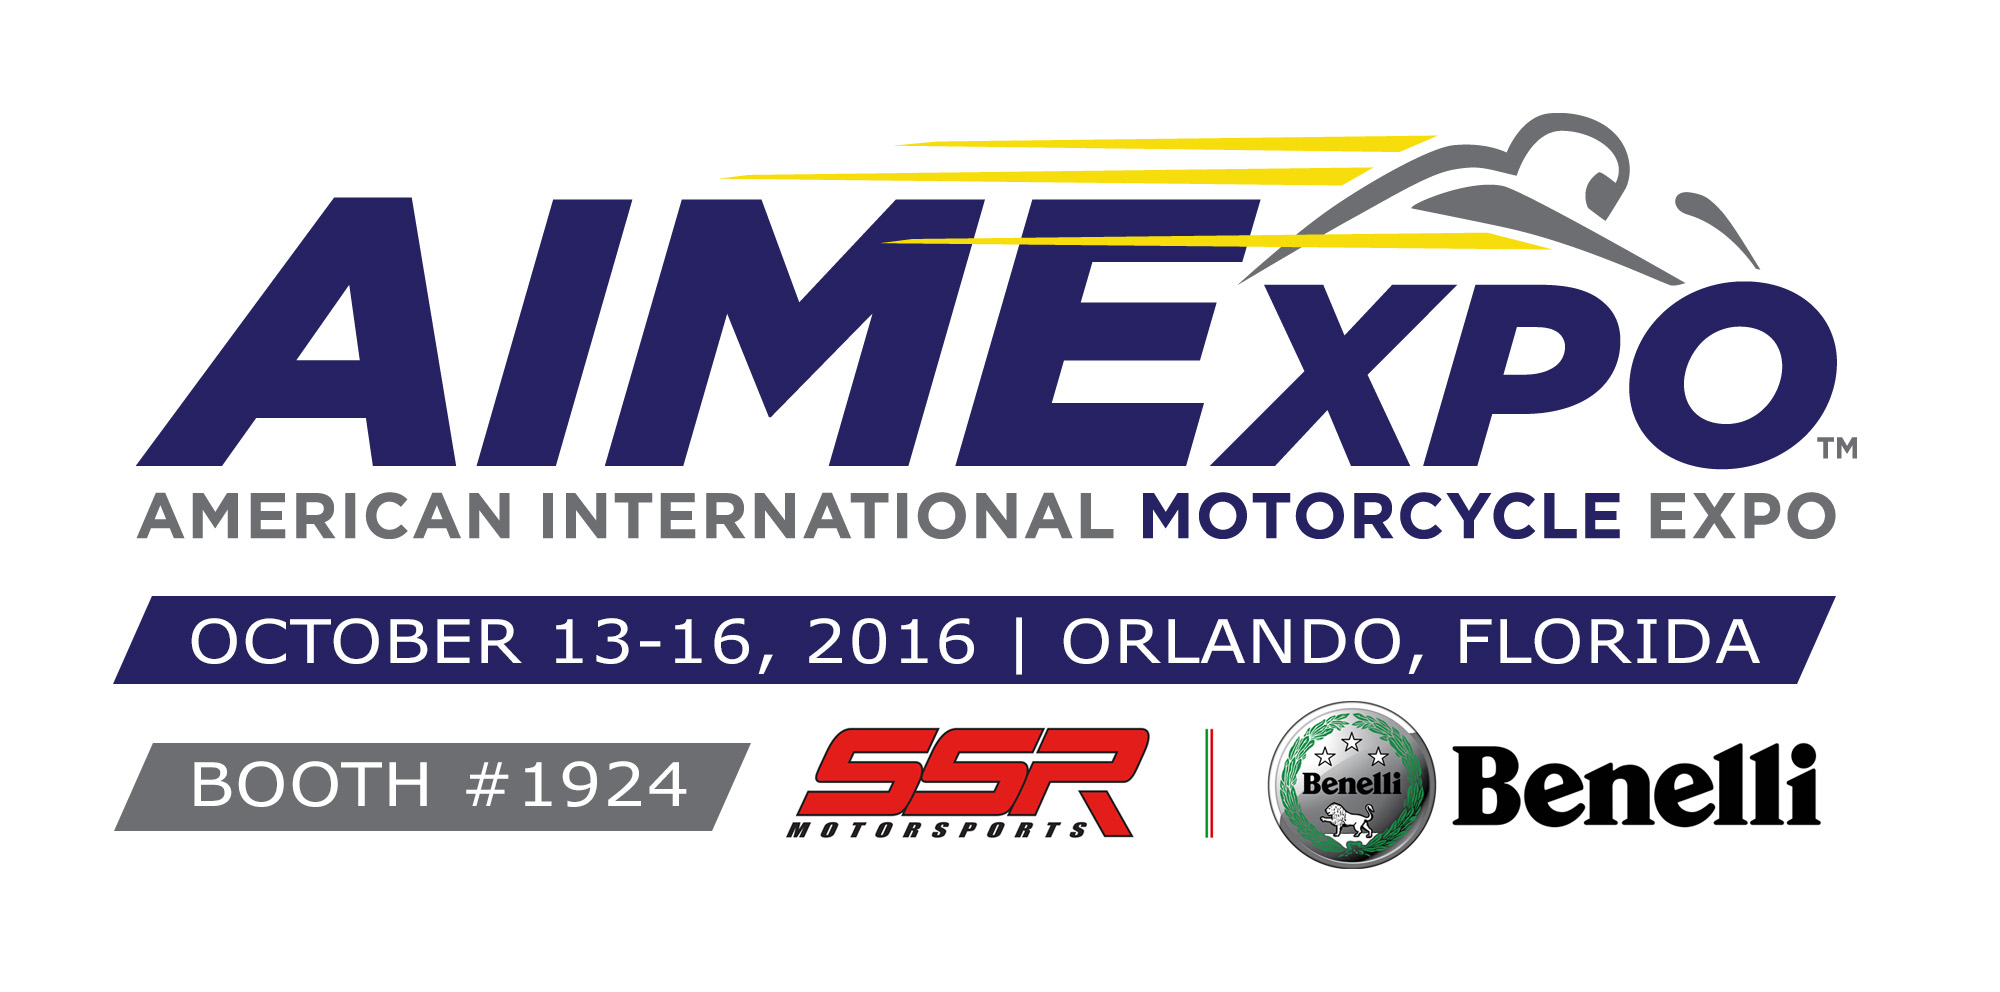 SSR will be attending Aimexpo Oct 13-16